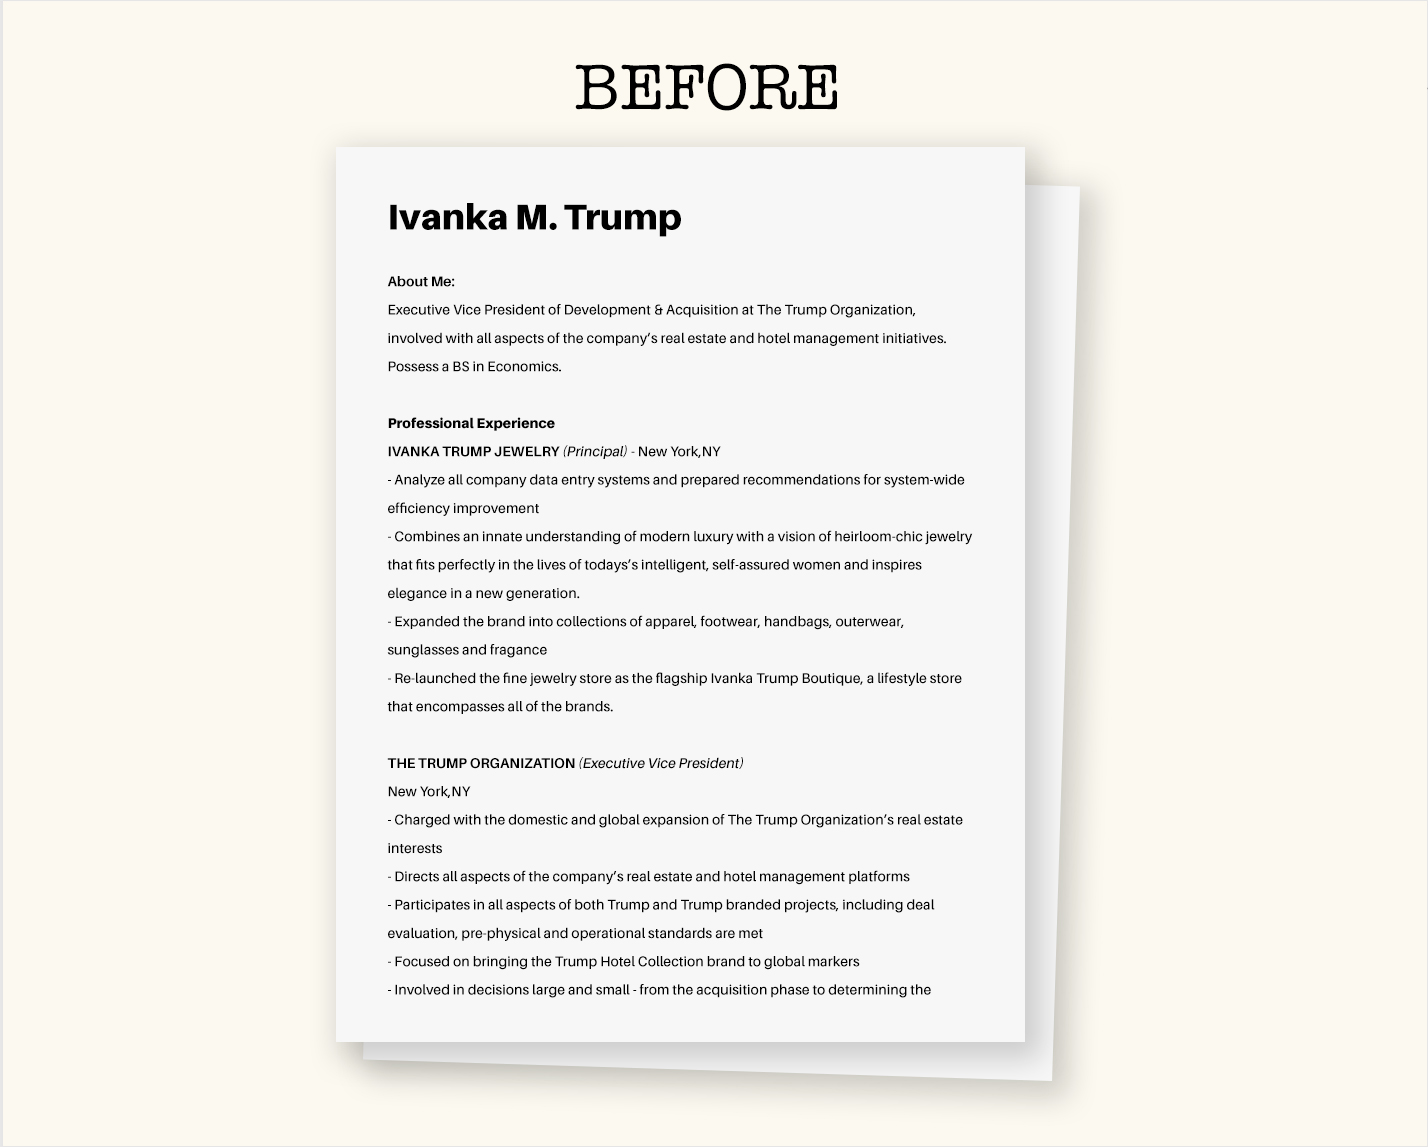 ivanka trump resume before